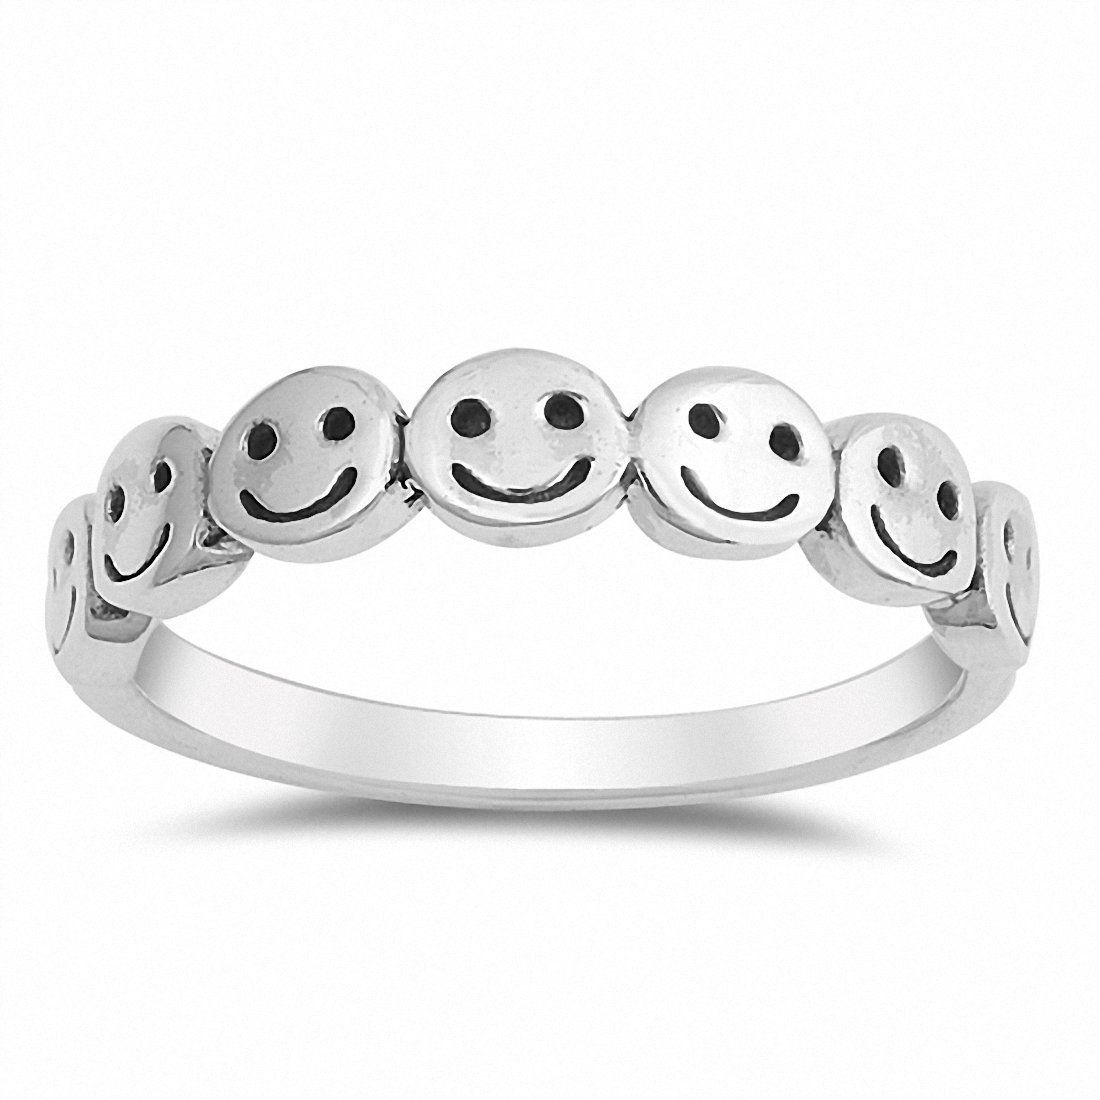 Circles Ring Genuine Sterling Silver 925 Oxidized Selectable Face Height 4 mm